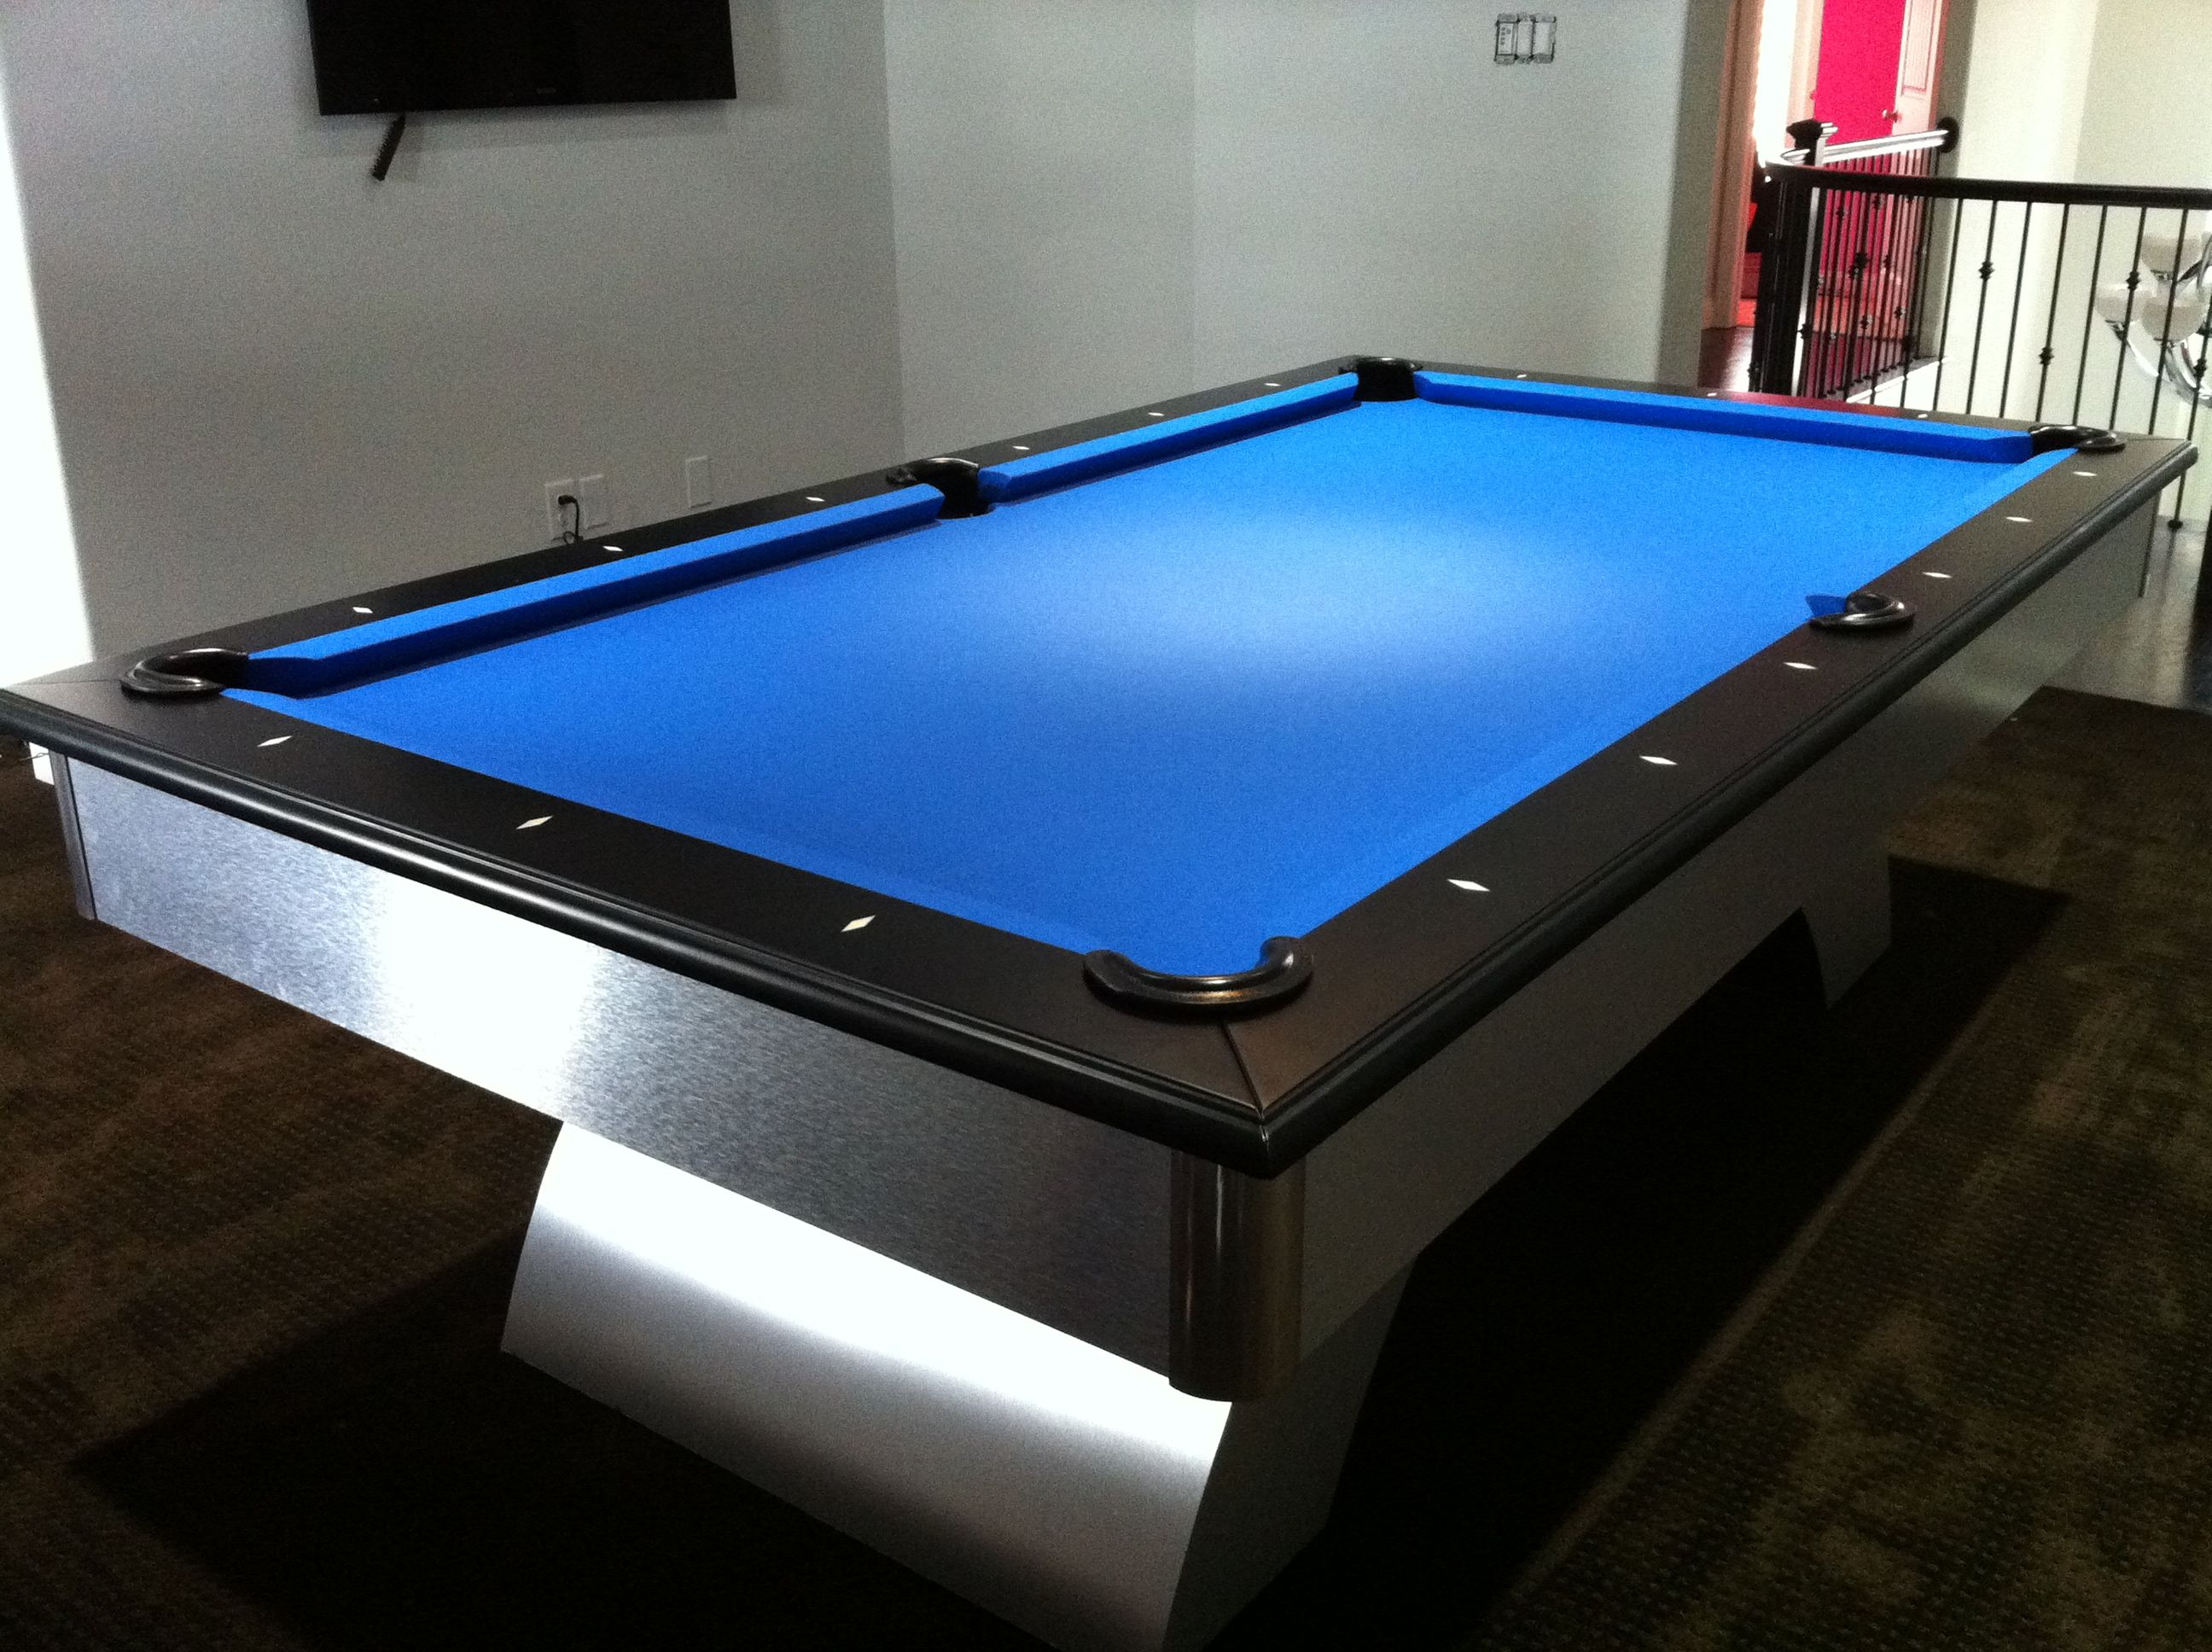 Pool Tables 1 inch slate Pool tables for sale Sears has